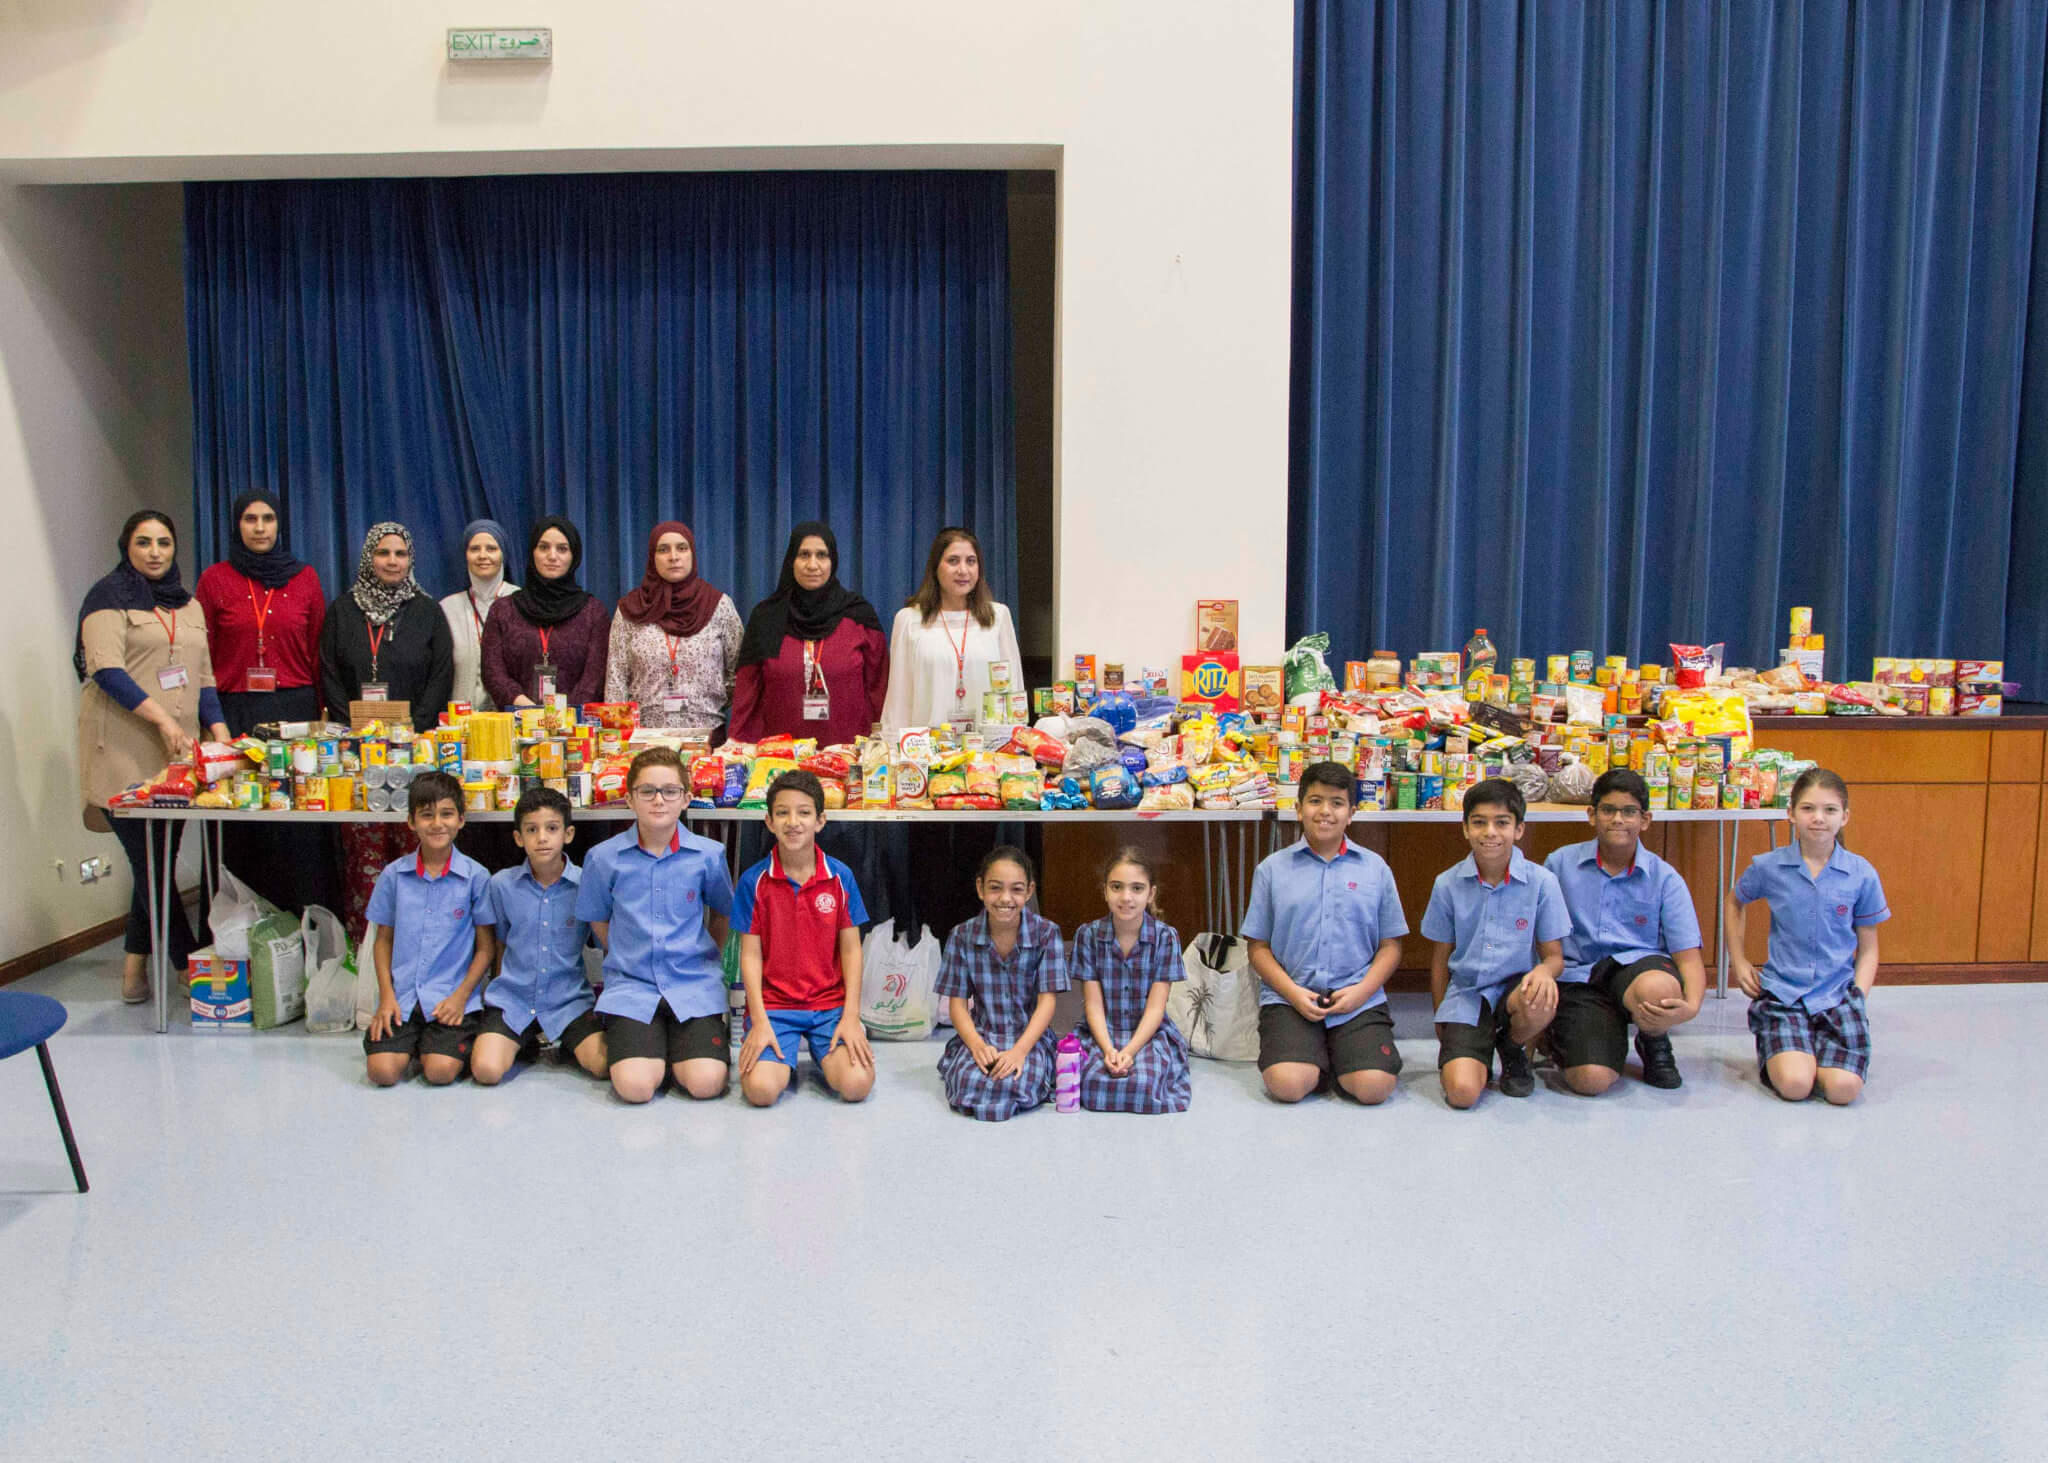 Harvest_Islam_Assembly_032 - Julie Jardine